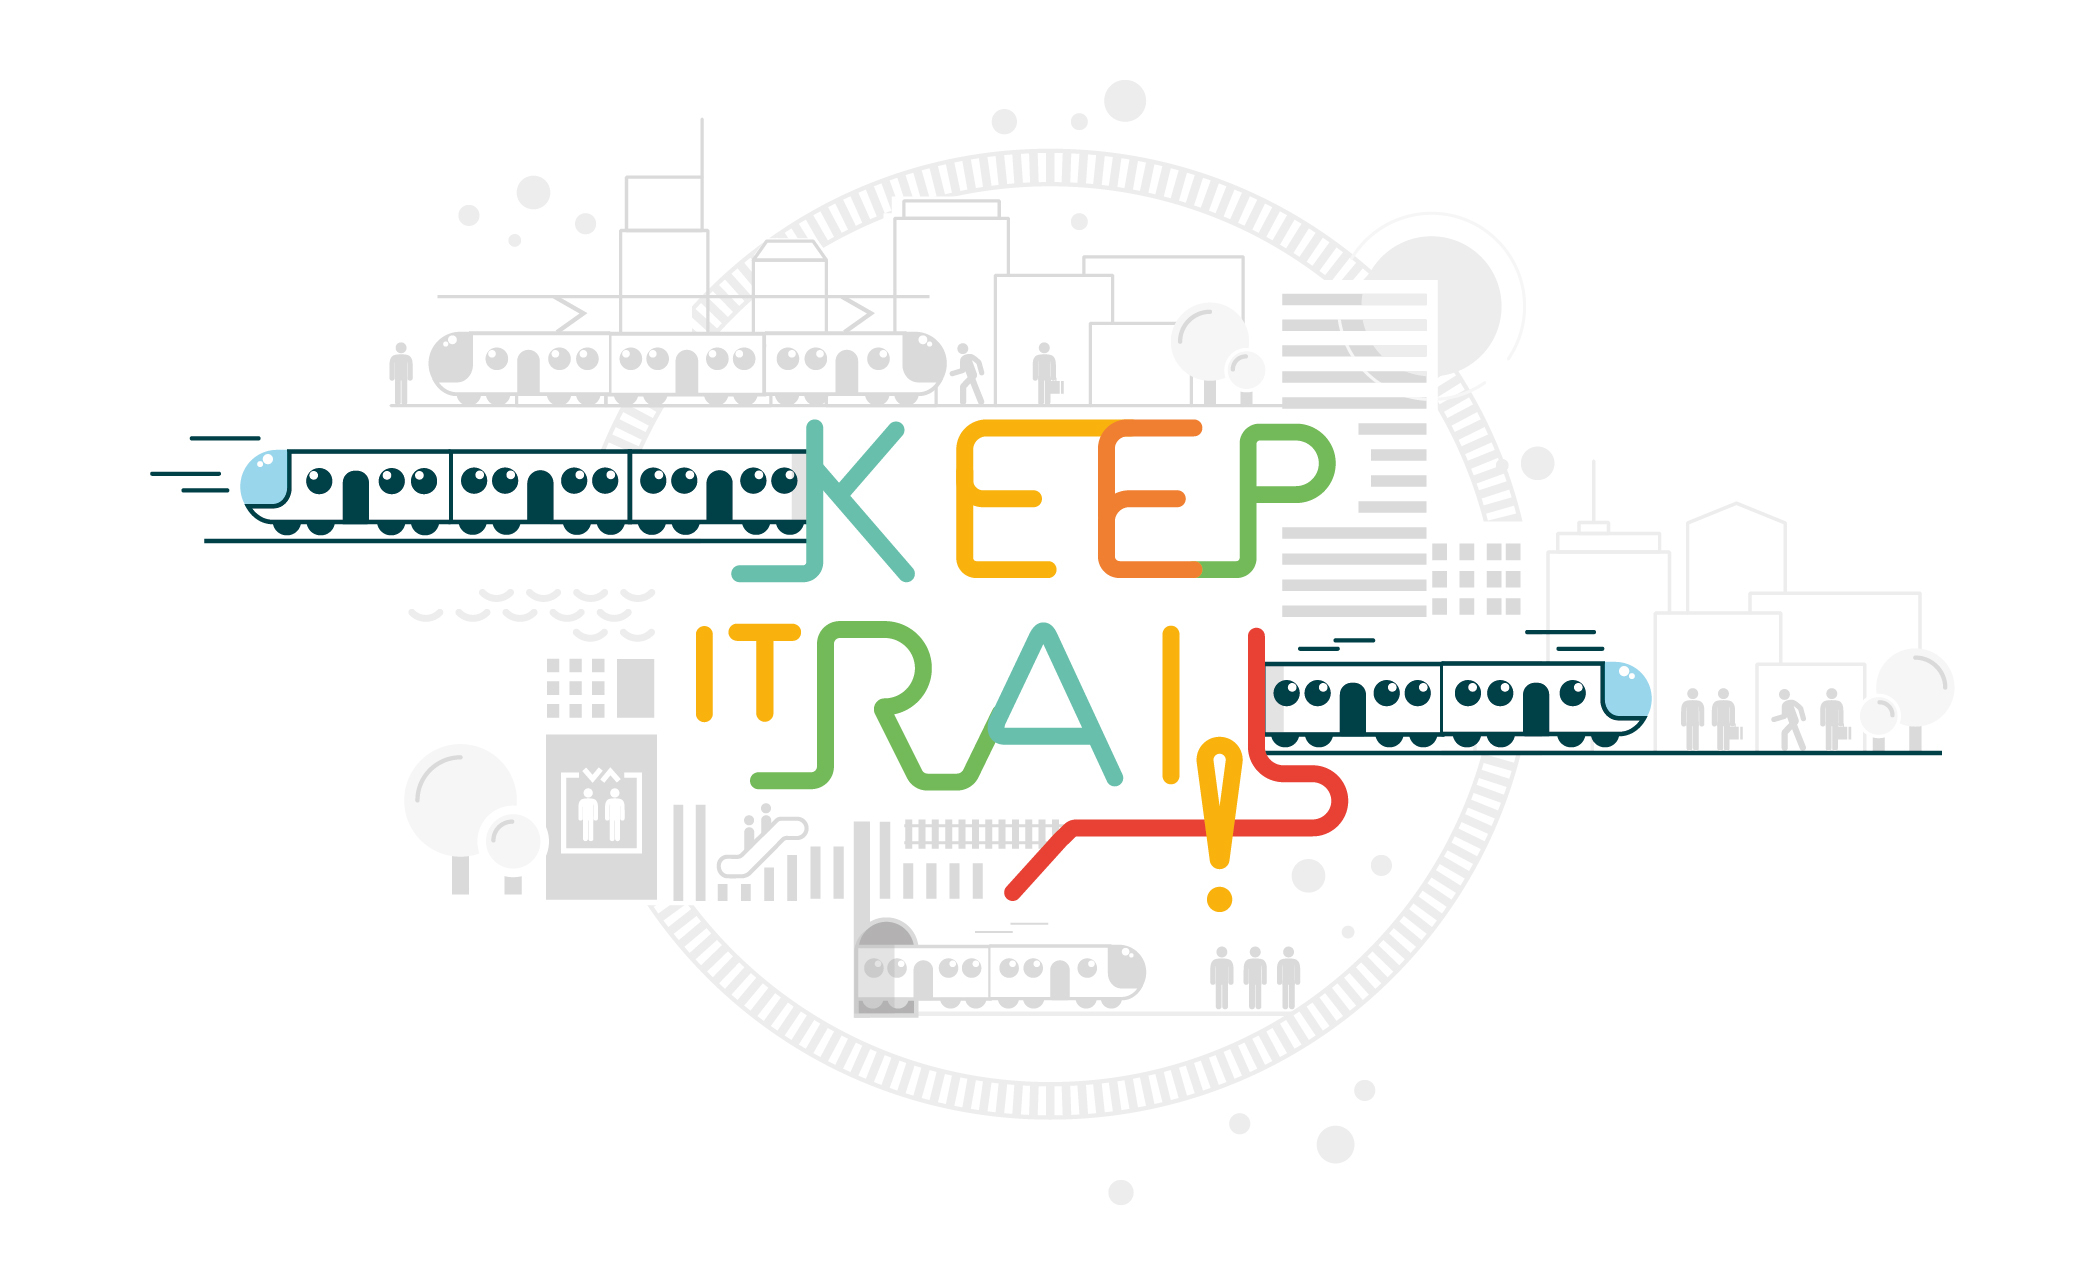 UITP launches Keep it Rail!, a new campaign aiming to promote urban rail for sustainable mobility